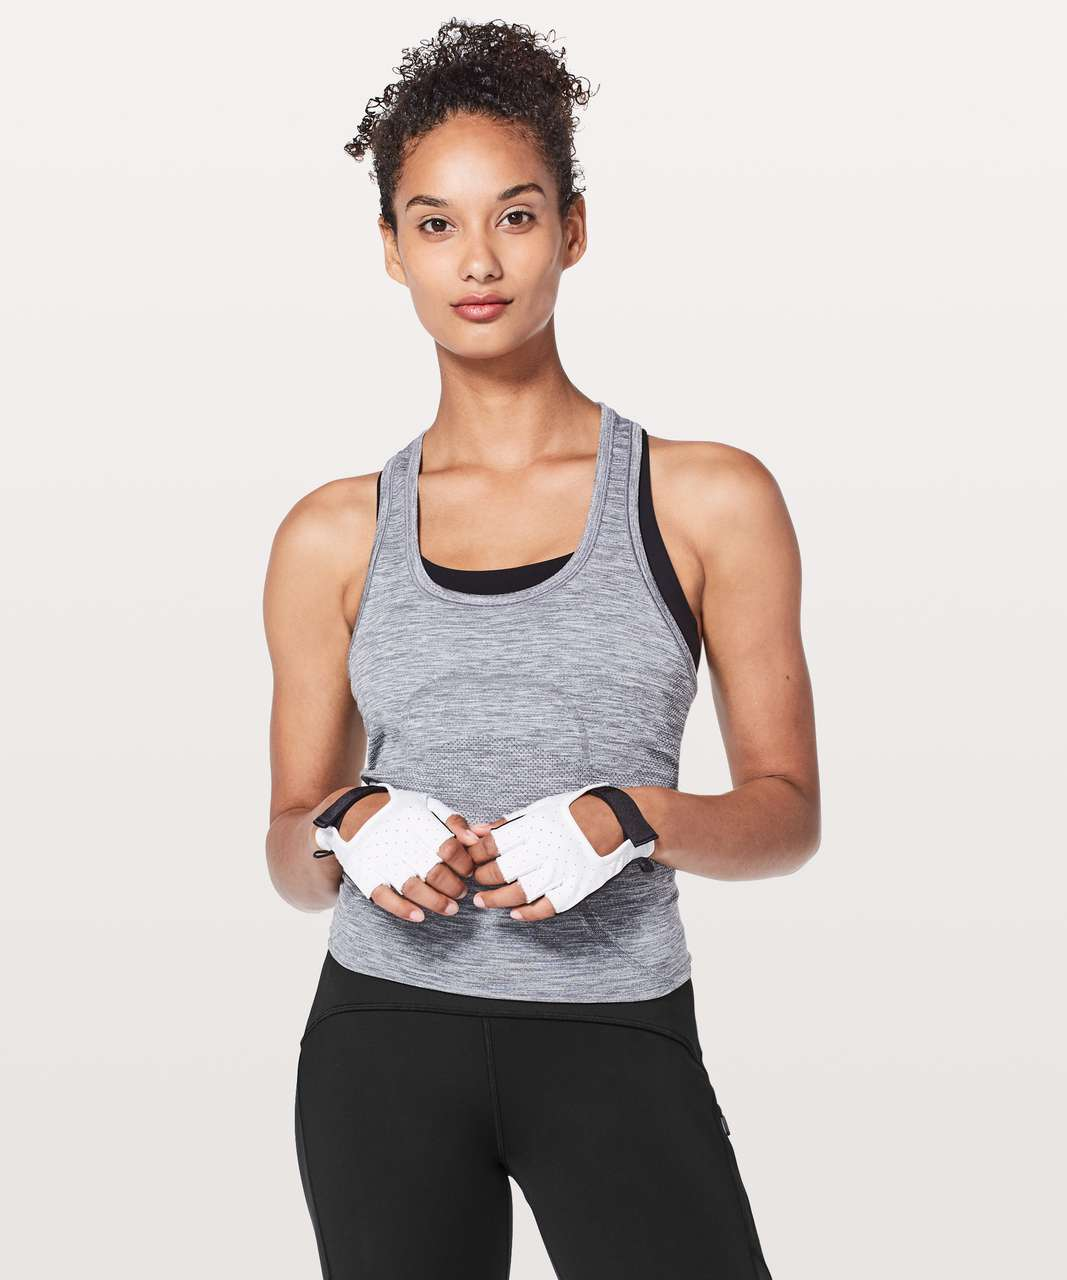 Lululemon Uplift Training Gloves - White / Black